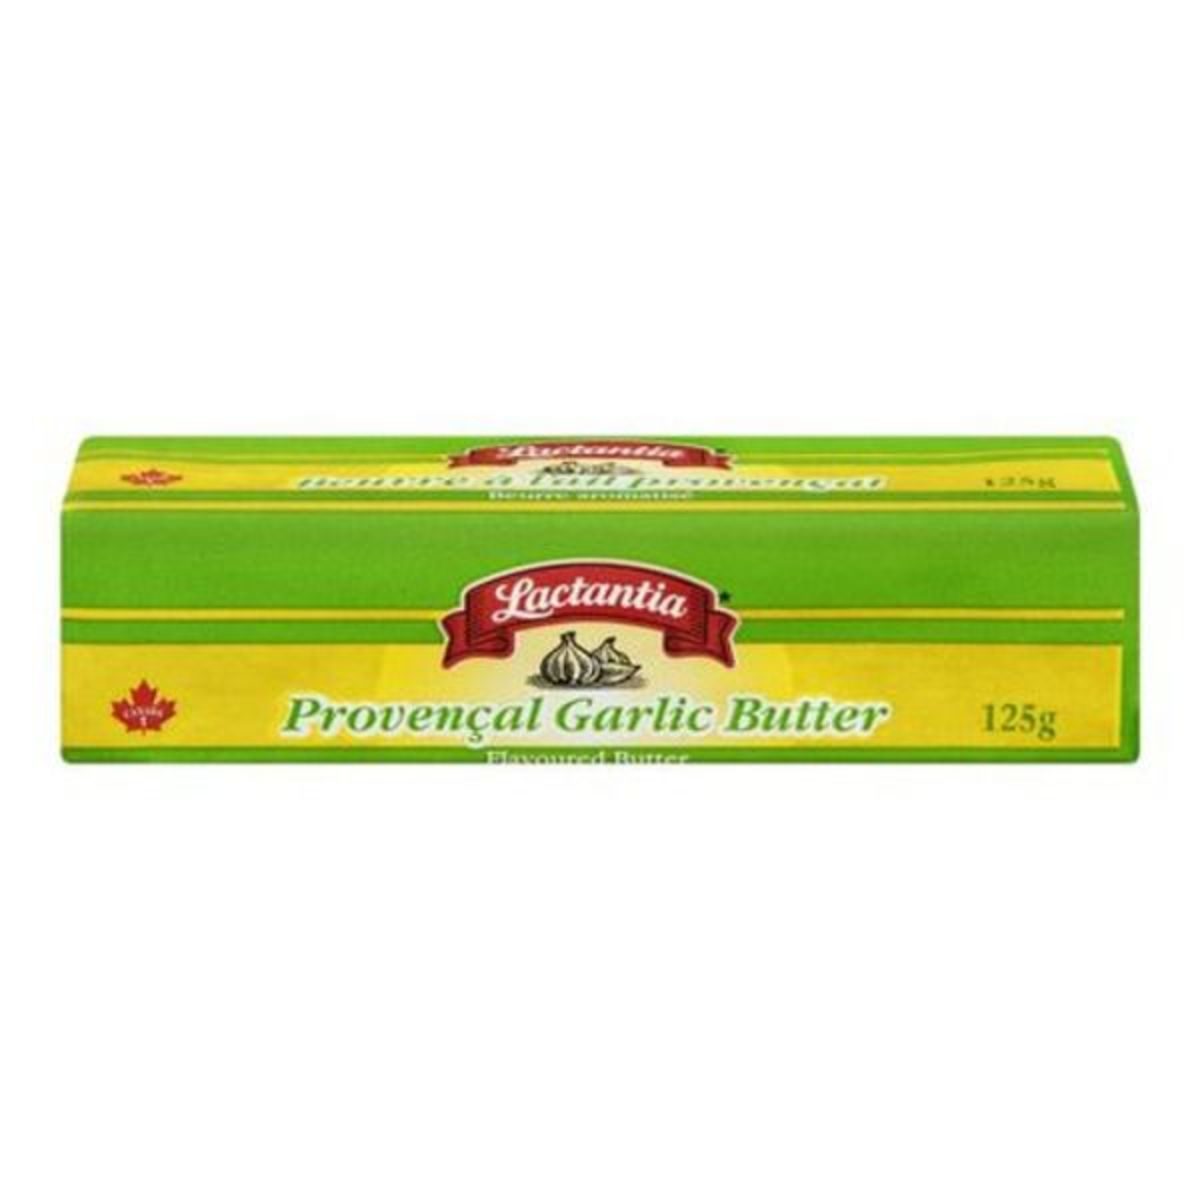 Lactantia Garlic Butter Sticks 125g